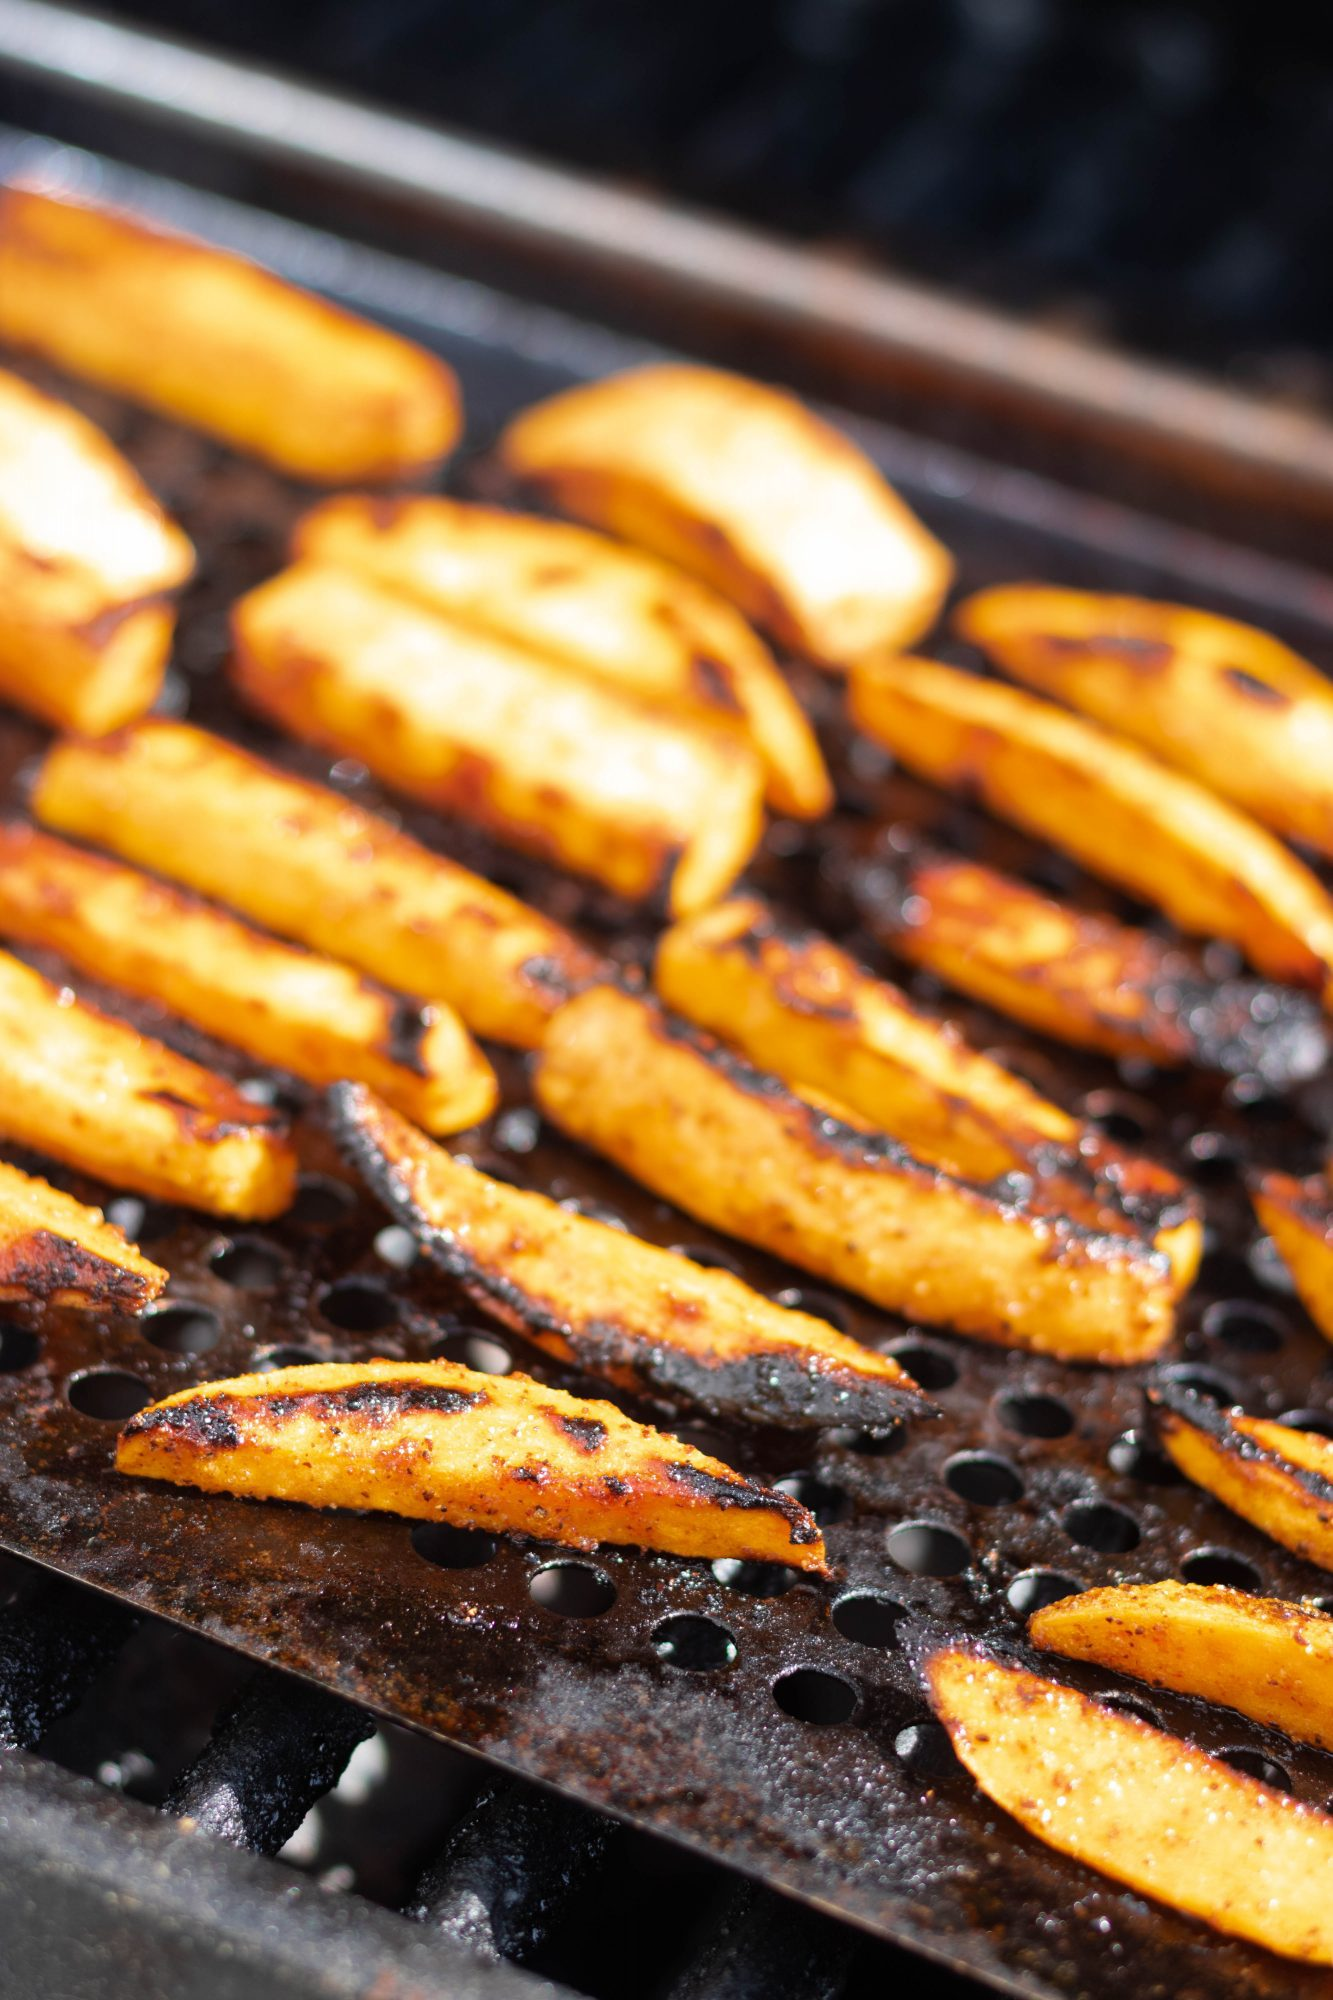 Sweet Potato Fries on the Grill